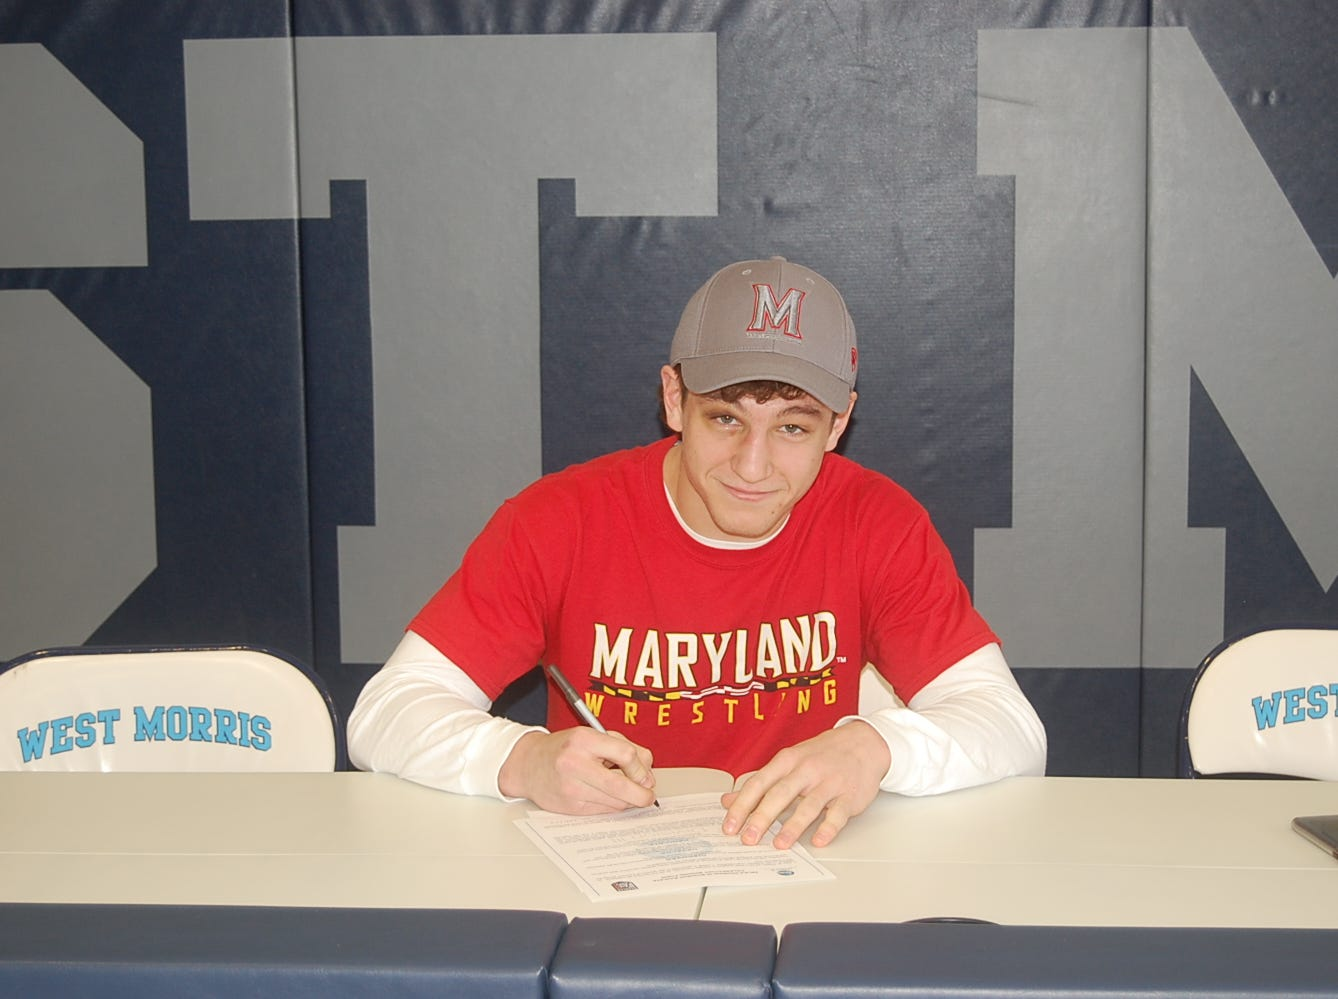 West Morris senior Justin LeMay signed a National Letter of Intent with Maryland wrestling.